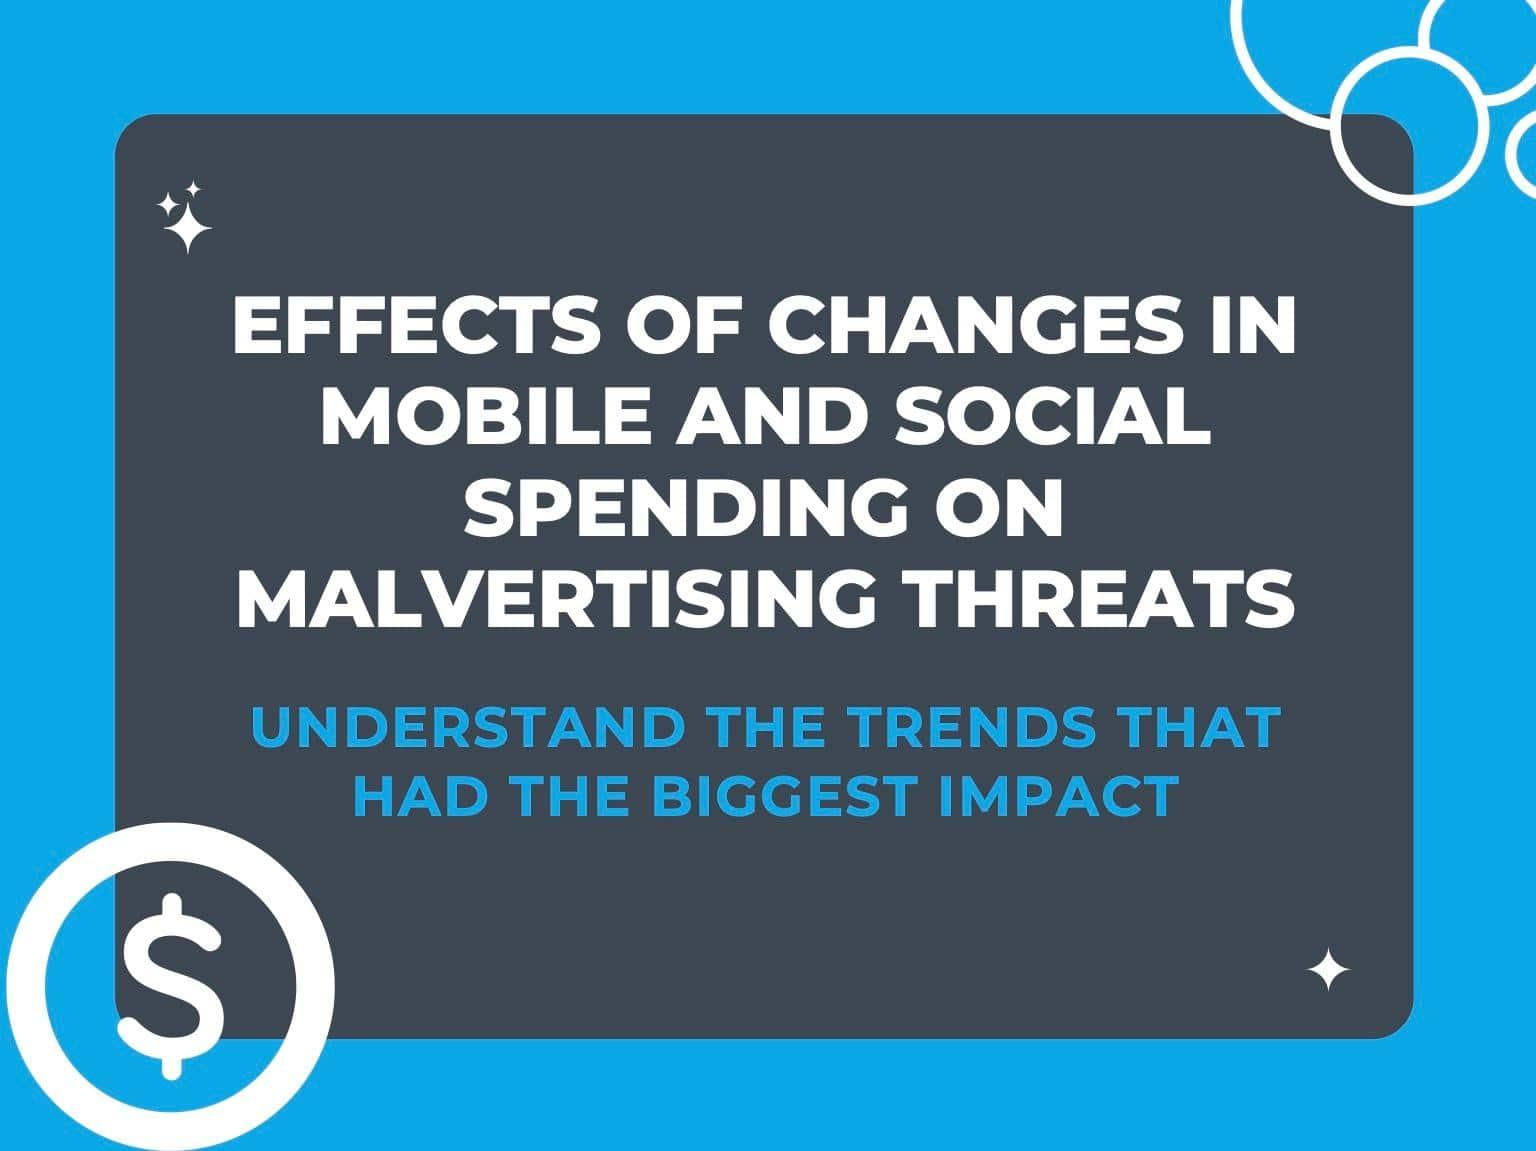 [New Research] Effects of Changes in Mobile and Social Spending on Malvertising Threats